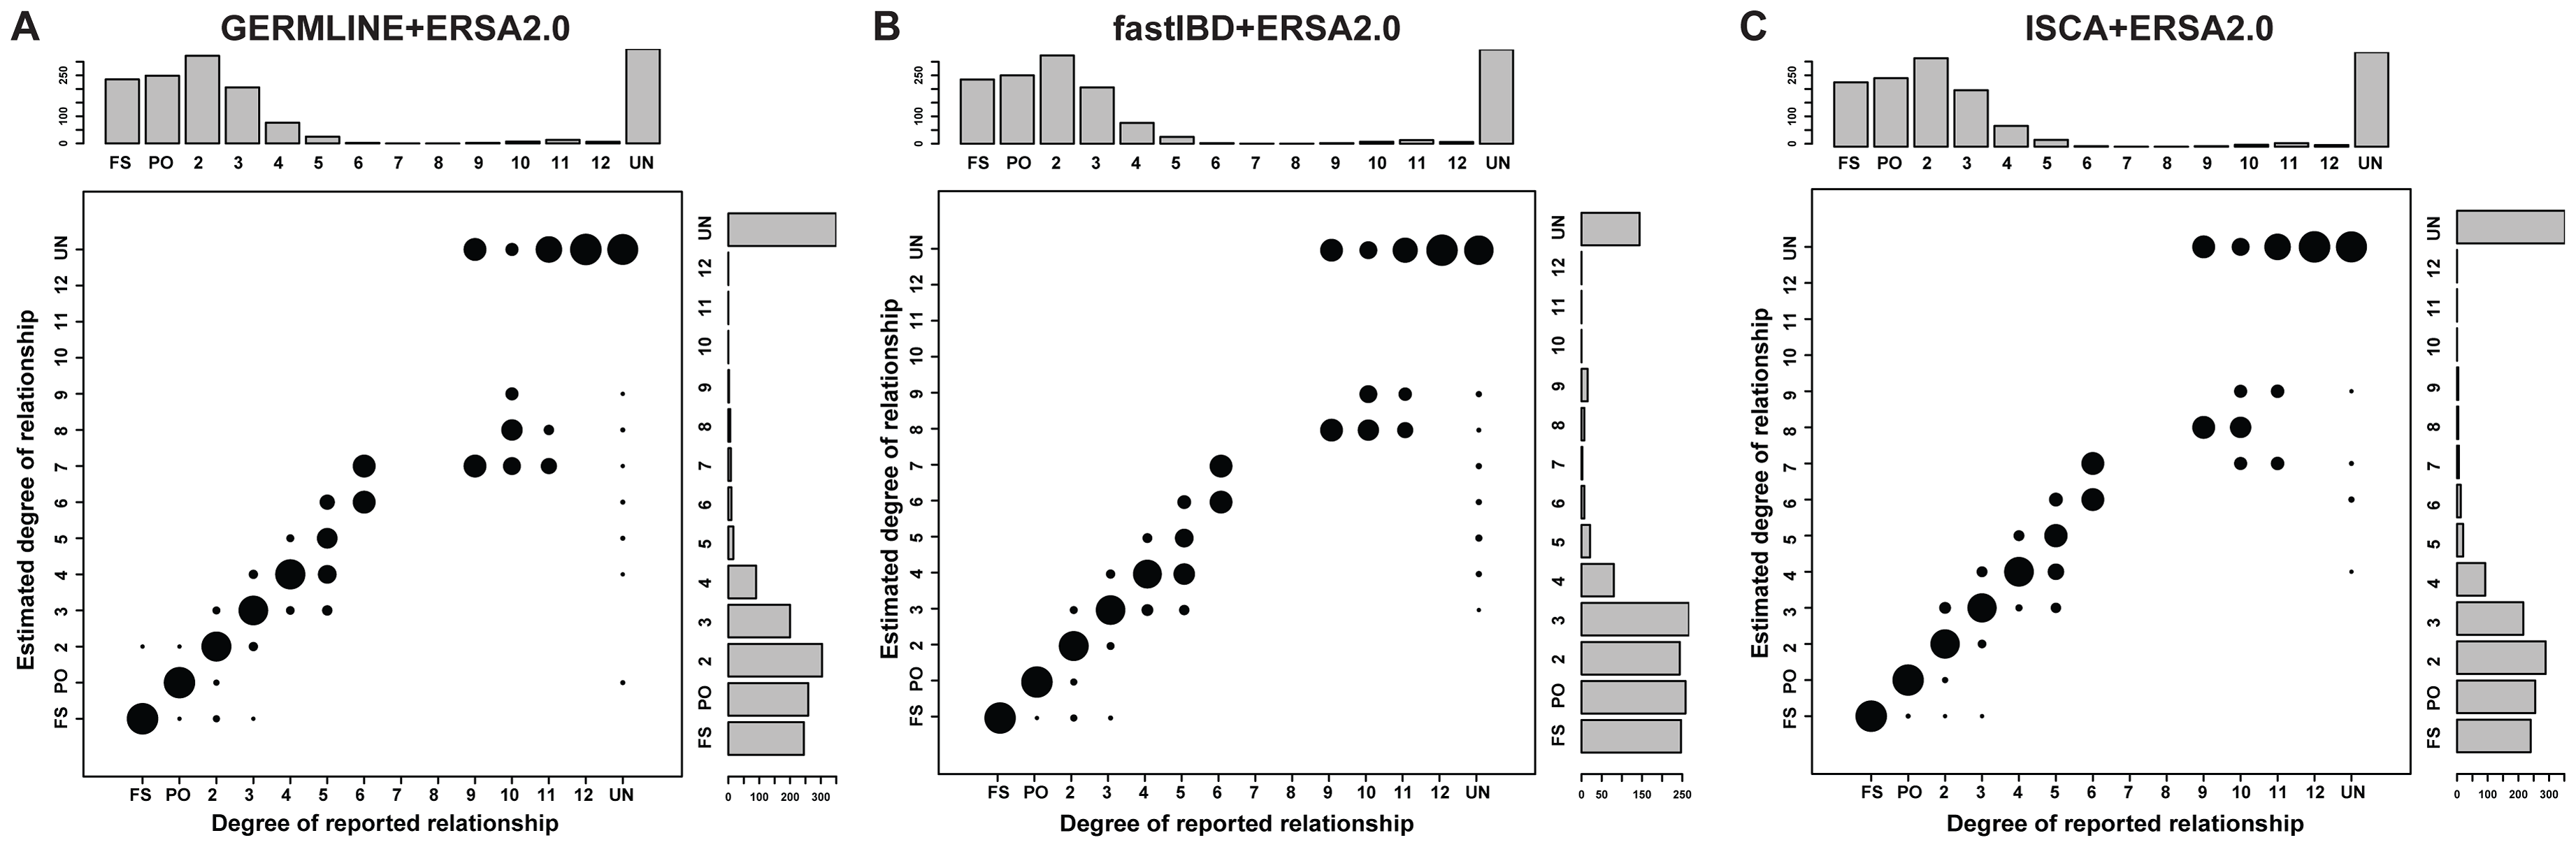 Performance of relationship estimation in 30 sequenced families using (A) GERMLINE-ERSA2.0, (B) fastIBD-ERSA2.0, and (C) ISCA-ERSA2.0.